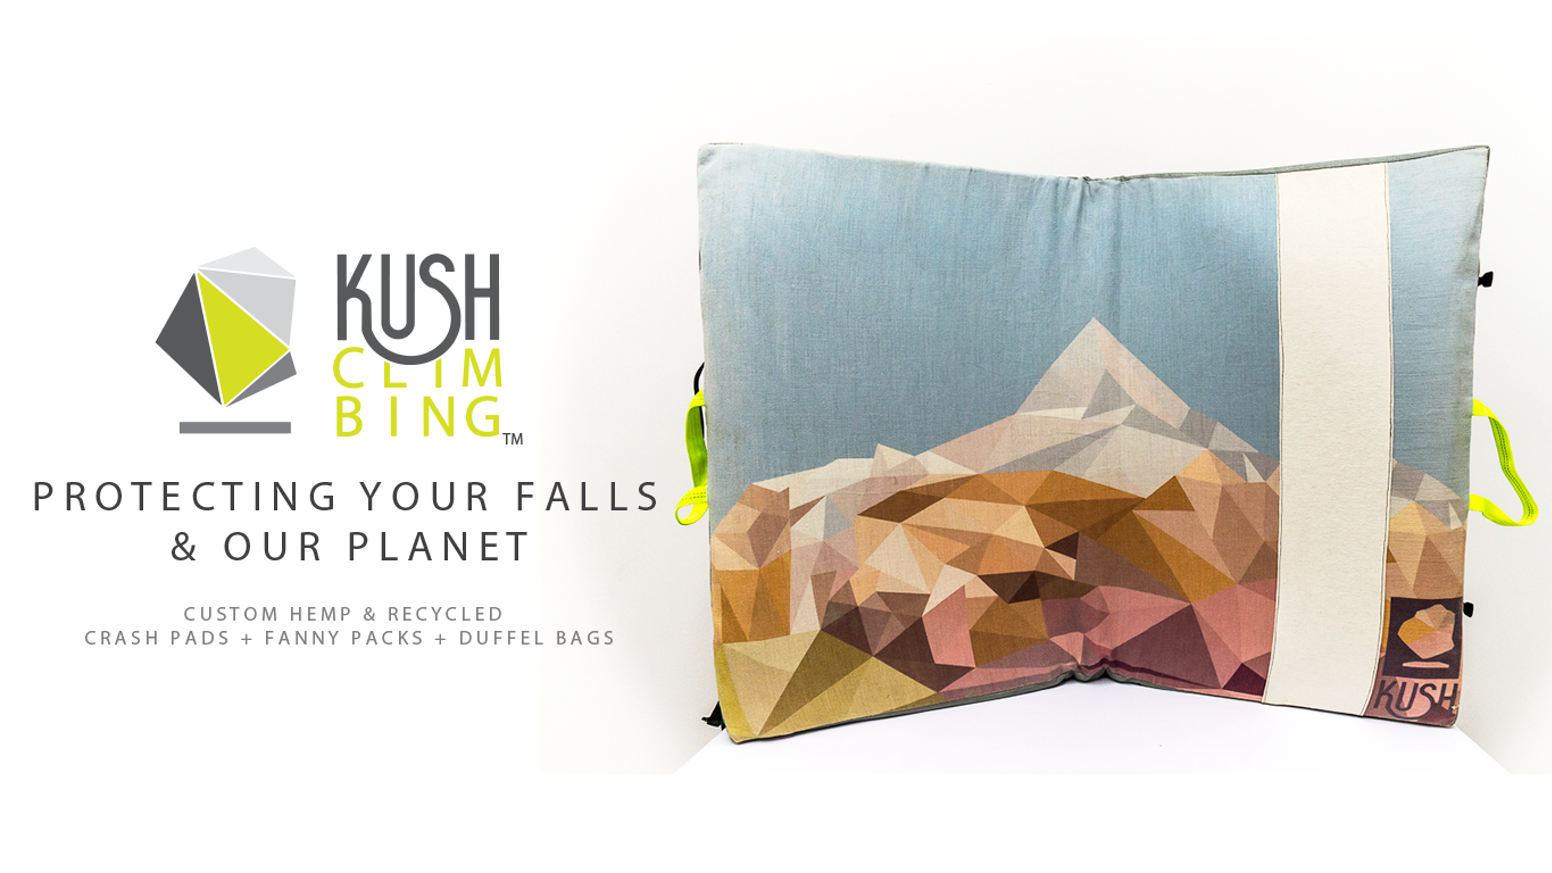 The OG Kush Pad™ is the world's first crash pad built with sustainability & creative expression in mind.